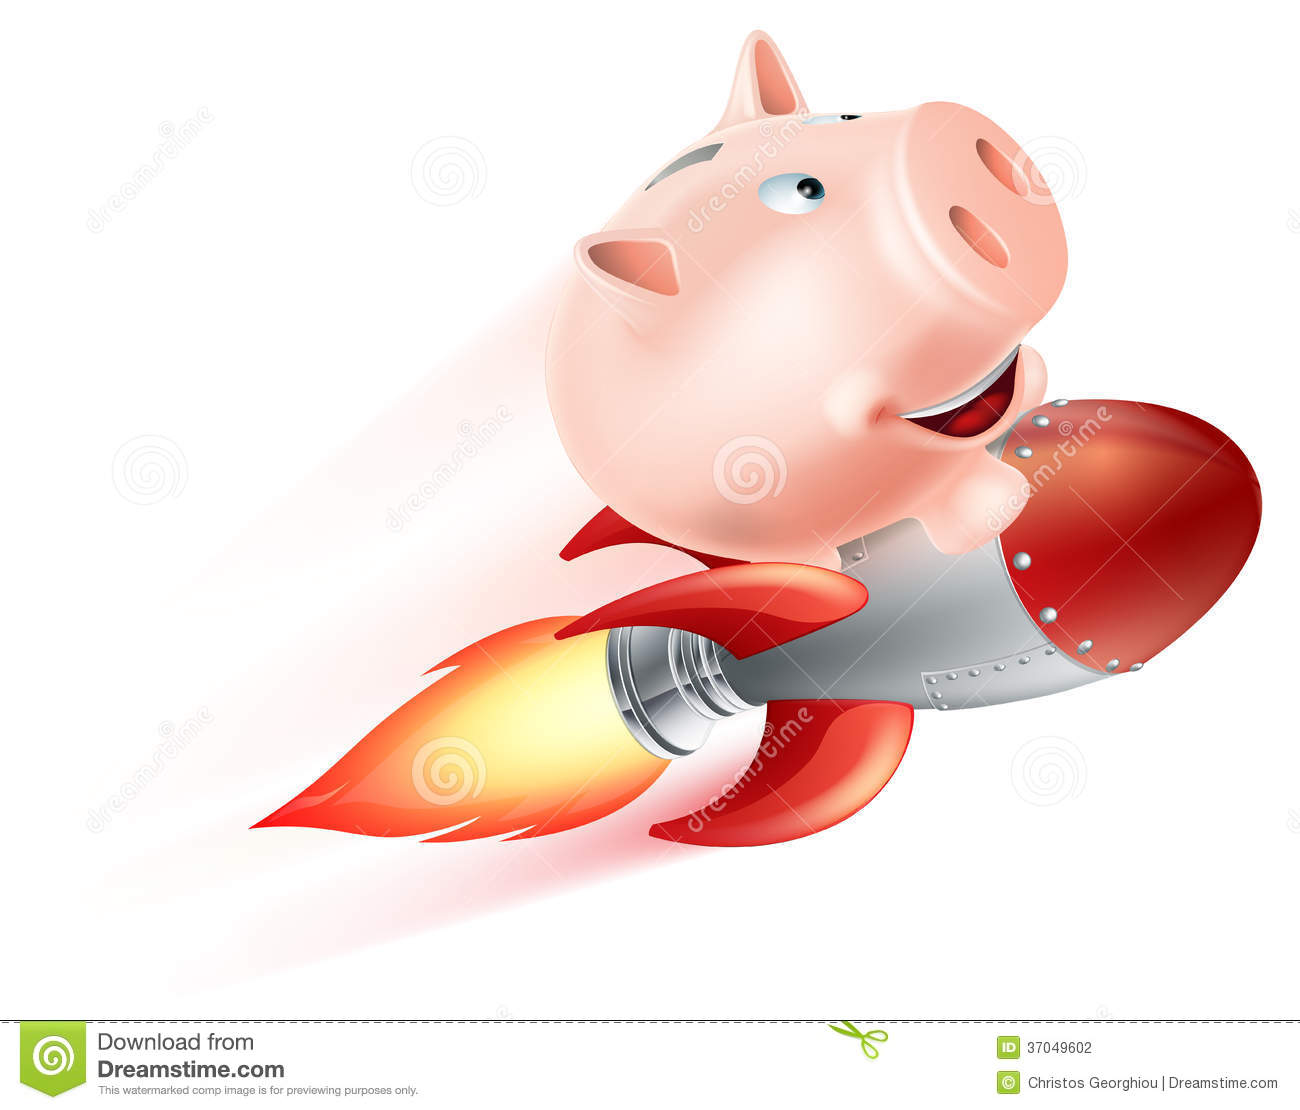 Flying rocket piggy bank stock vector image of bank 37049602 - Rocket ship piggy bank ...